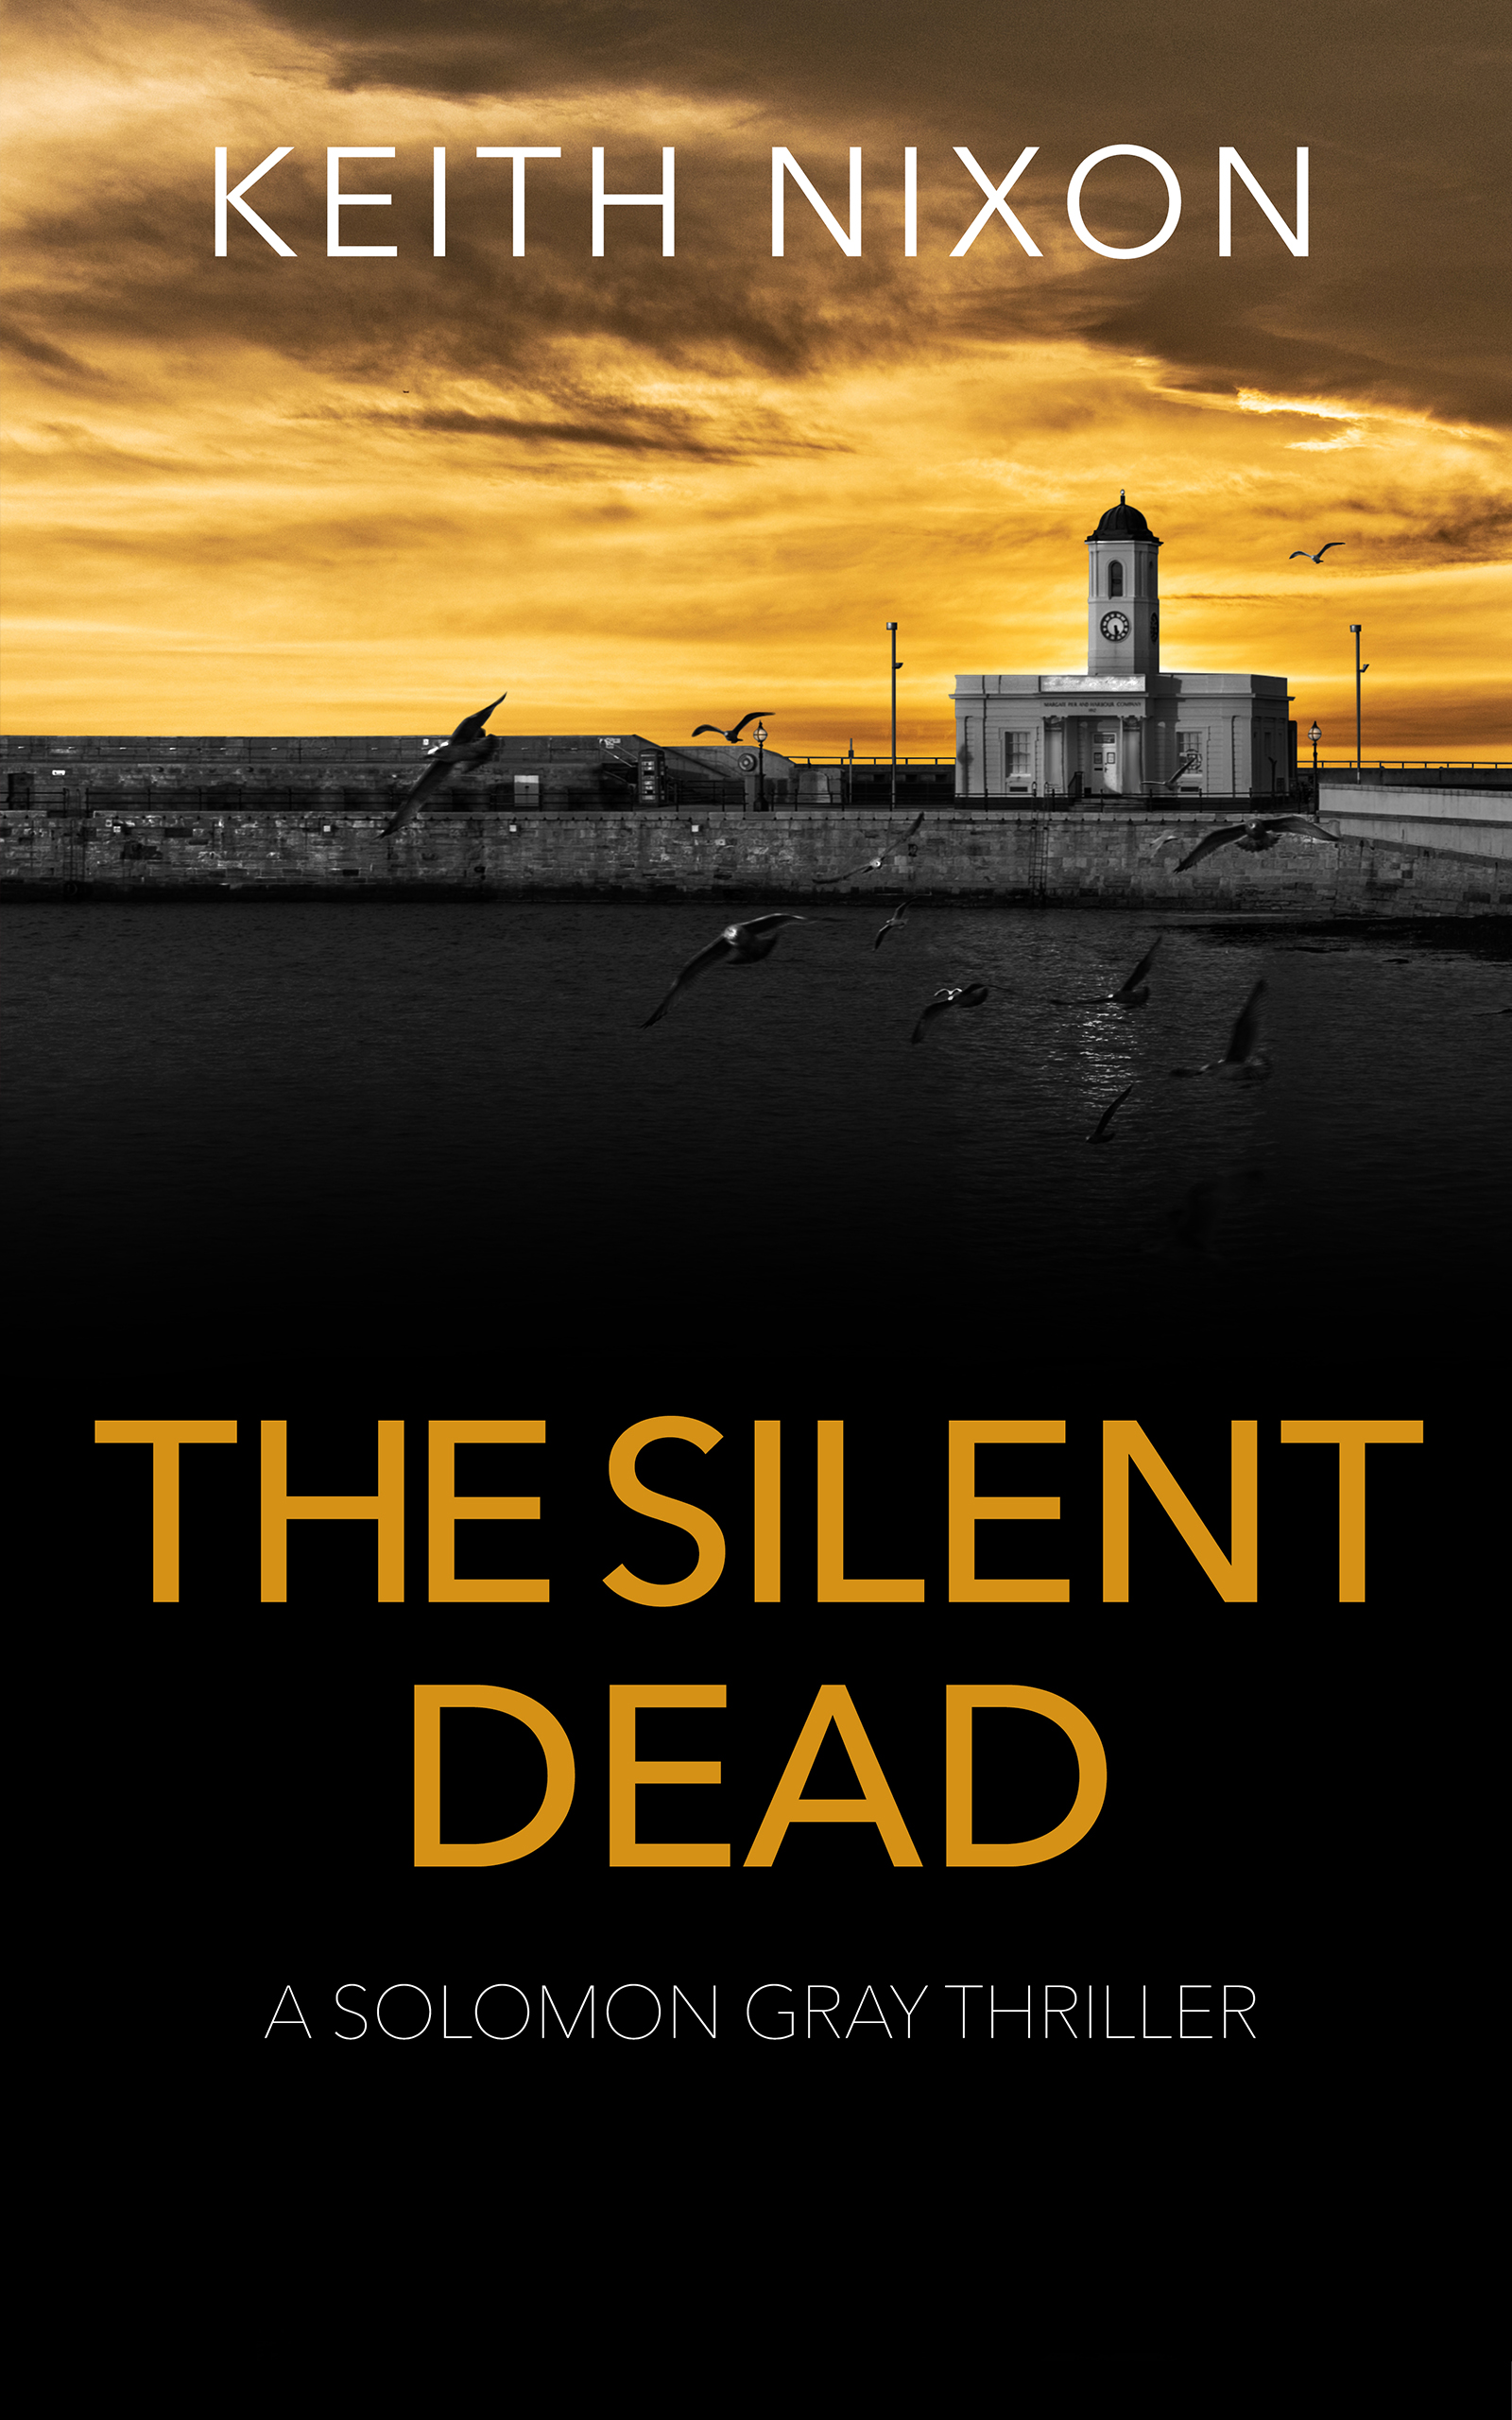 The Silent Dead - Out 17th September - A gruesome discovery. A secret long buried. The past uncovered.When Detective Inspector Solomon Gray is called to a quiet residential property what he discovers is truly shocking – the mummified body of a new-born baby. The tiny corpse, hidden inside a cardboard box at the back of a wardrobe, is only found after the death of the homeowner, Andrea Ogilvy.Until a few years ago Ogilvy was a foster carer for the local council, looking after hundreds of children during her career. But something made her give up her role. But what? Nobody truly knows.DNA analysis on the child leads Gray to three women; one of which may be the abandoned baby's mother. Gray digs deeper, uncovering painful family secrets and lies. It seems vulnerable young women were being exploited by a man in a position of power. But who helped him cover everything up? And why?And someone is setting a dog onto teenagers – criminals early in their careers. Seemingly a vigilante is operating, doing what the police won't. And, as usual, Gray's complex personal life interferes with his job.Who is the baby? Why was it hidden? What lives will be shattered by Gray's investigation?